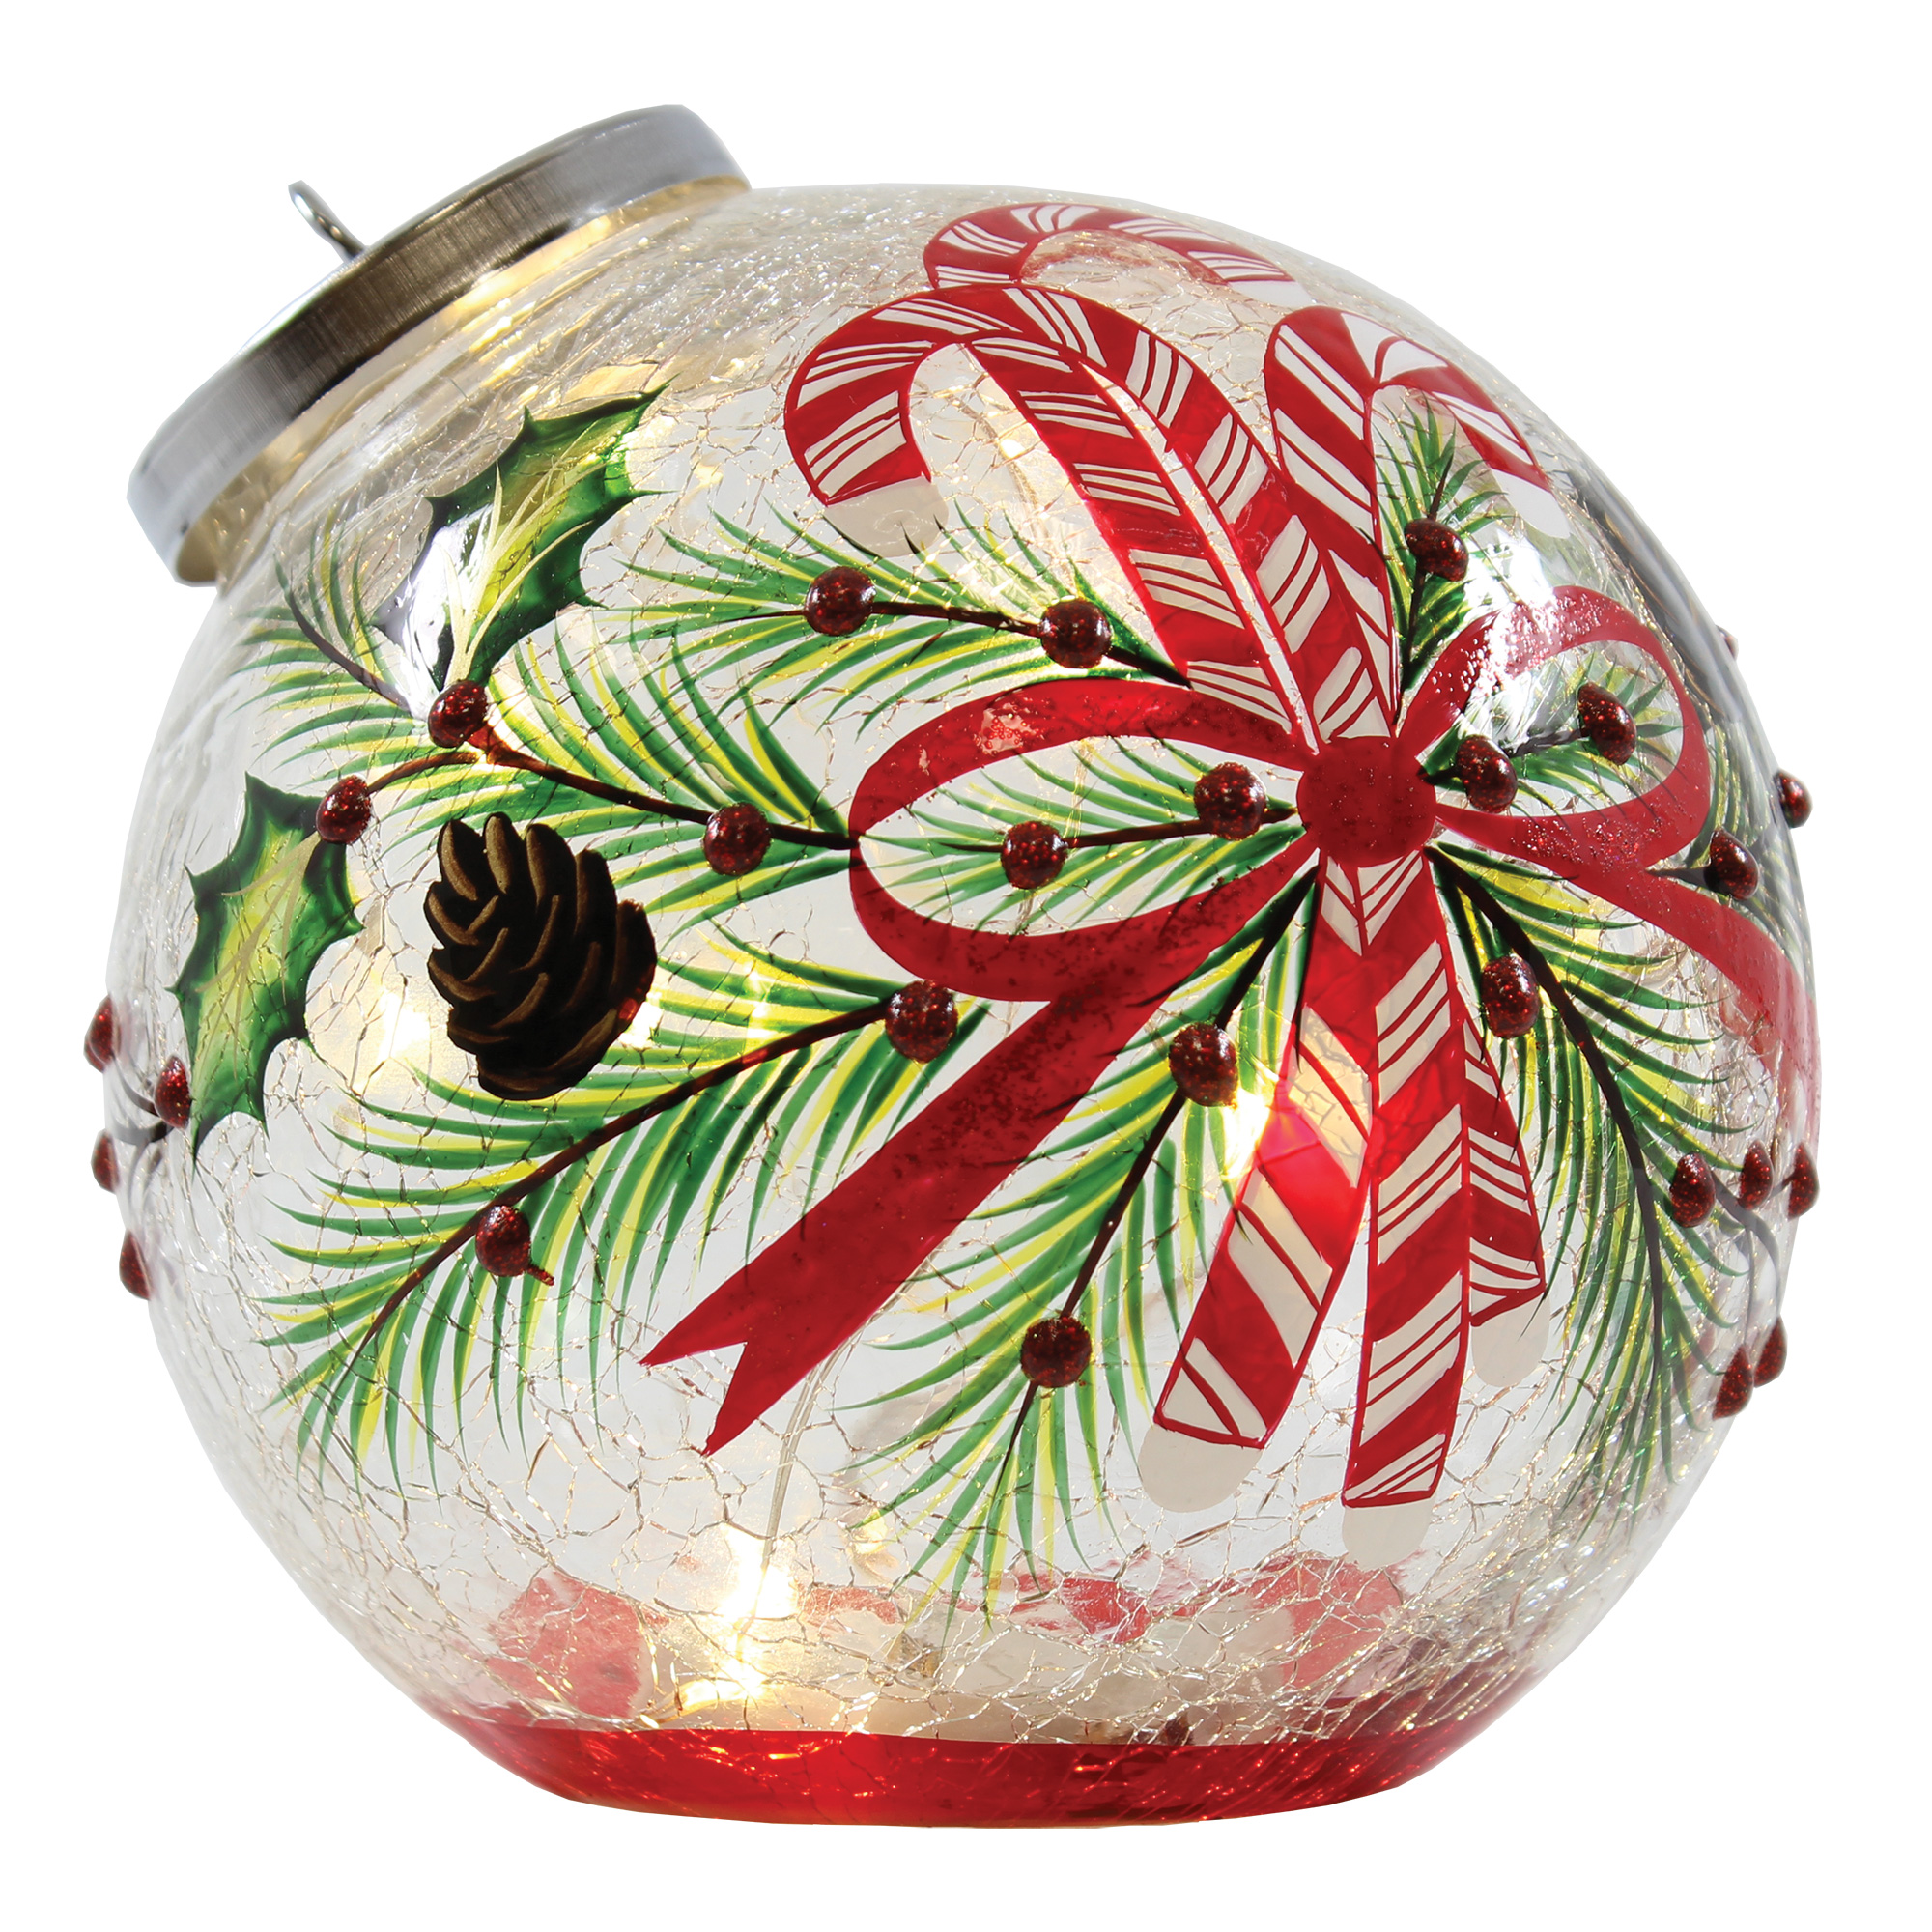 """5.5"""" x 6"""" x 5.5"""" CANDY CANE ORNAMENT WITH LIGHTS"""